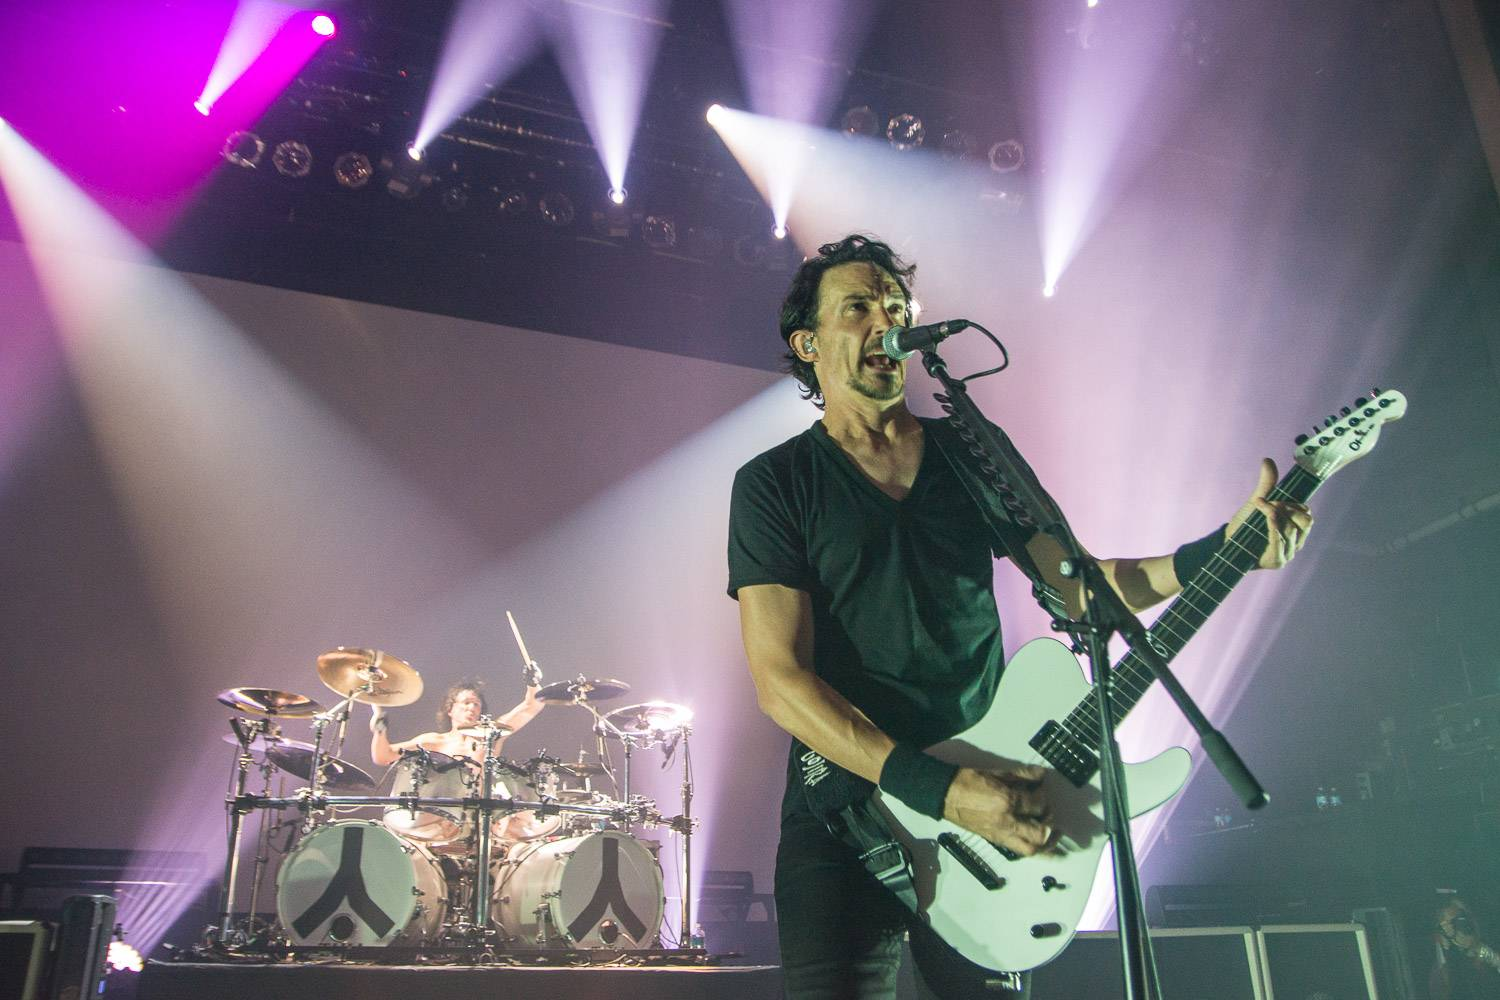 Gojira at the Vogue Theatre, Vancouver, Oct. 9 2016. Pavel Boiko photo.